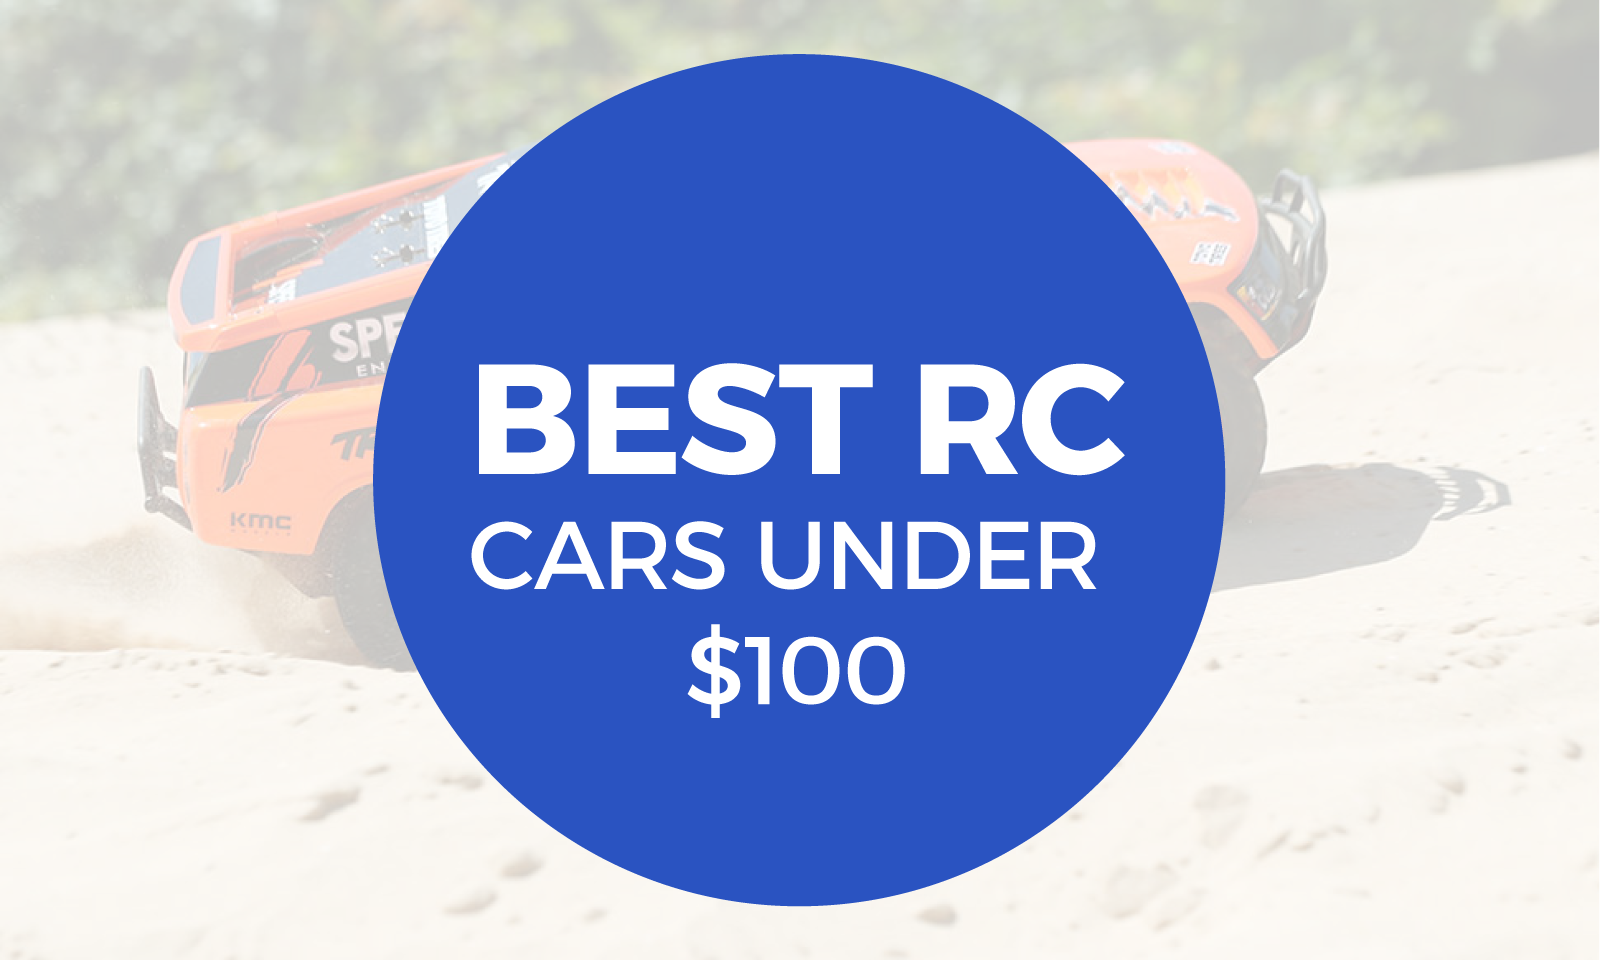 Best RC Car Under $100